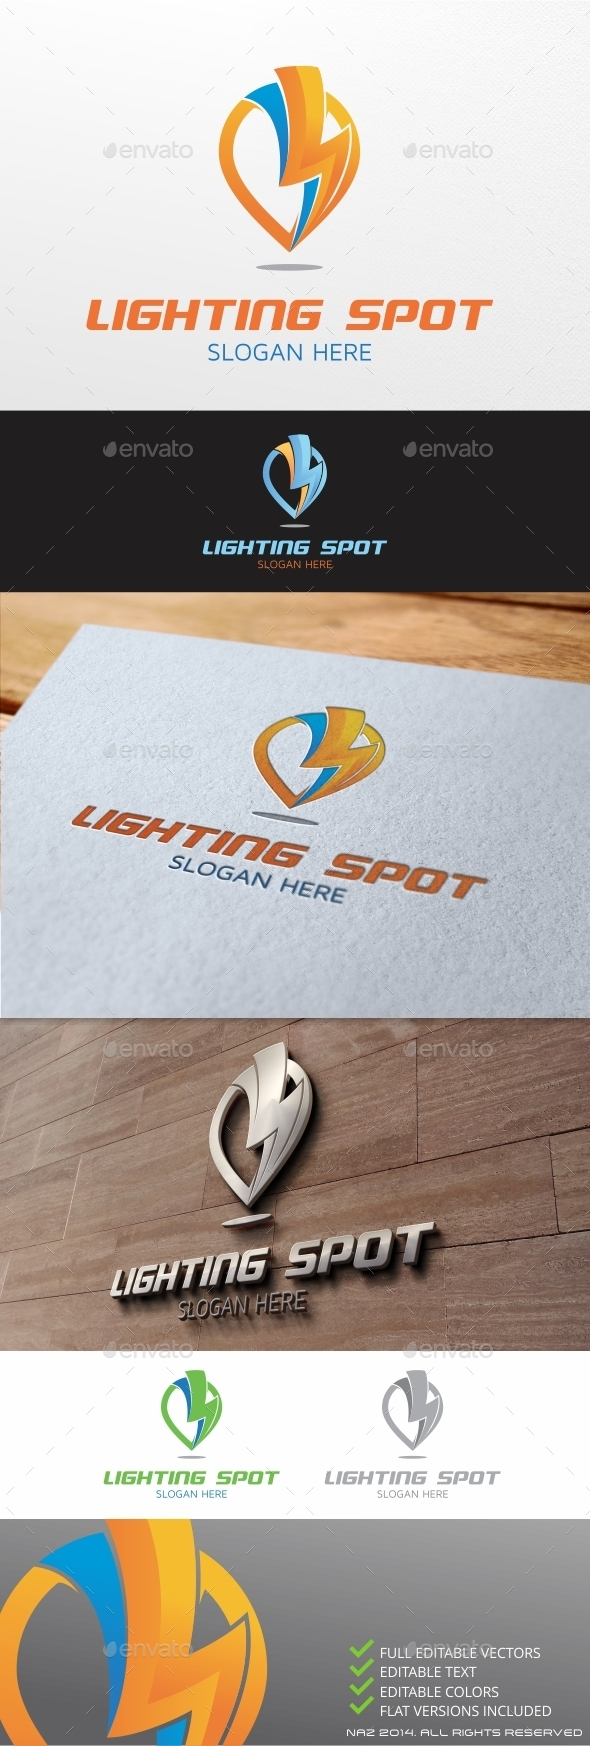 Lightning Spot Logo - Nature Logo Templates